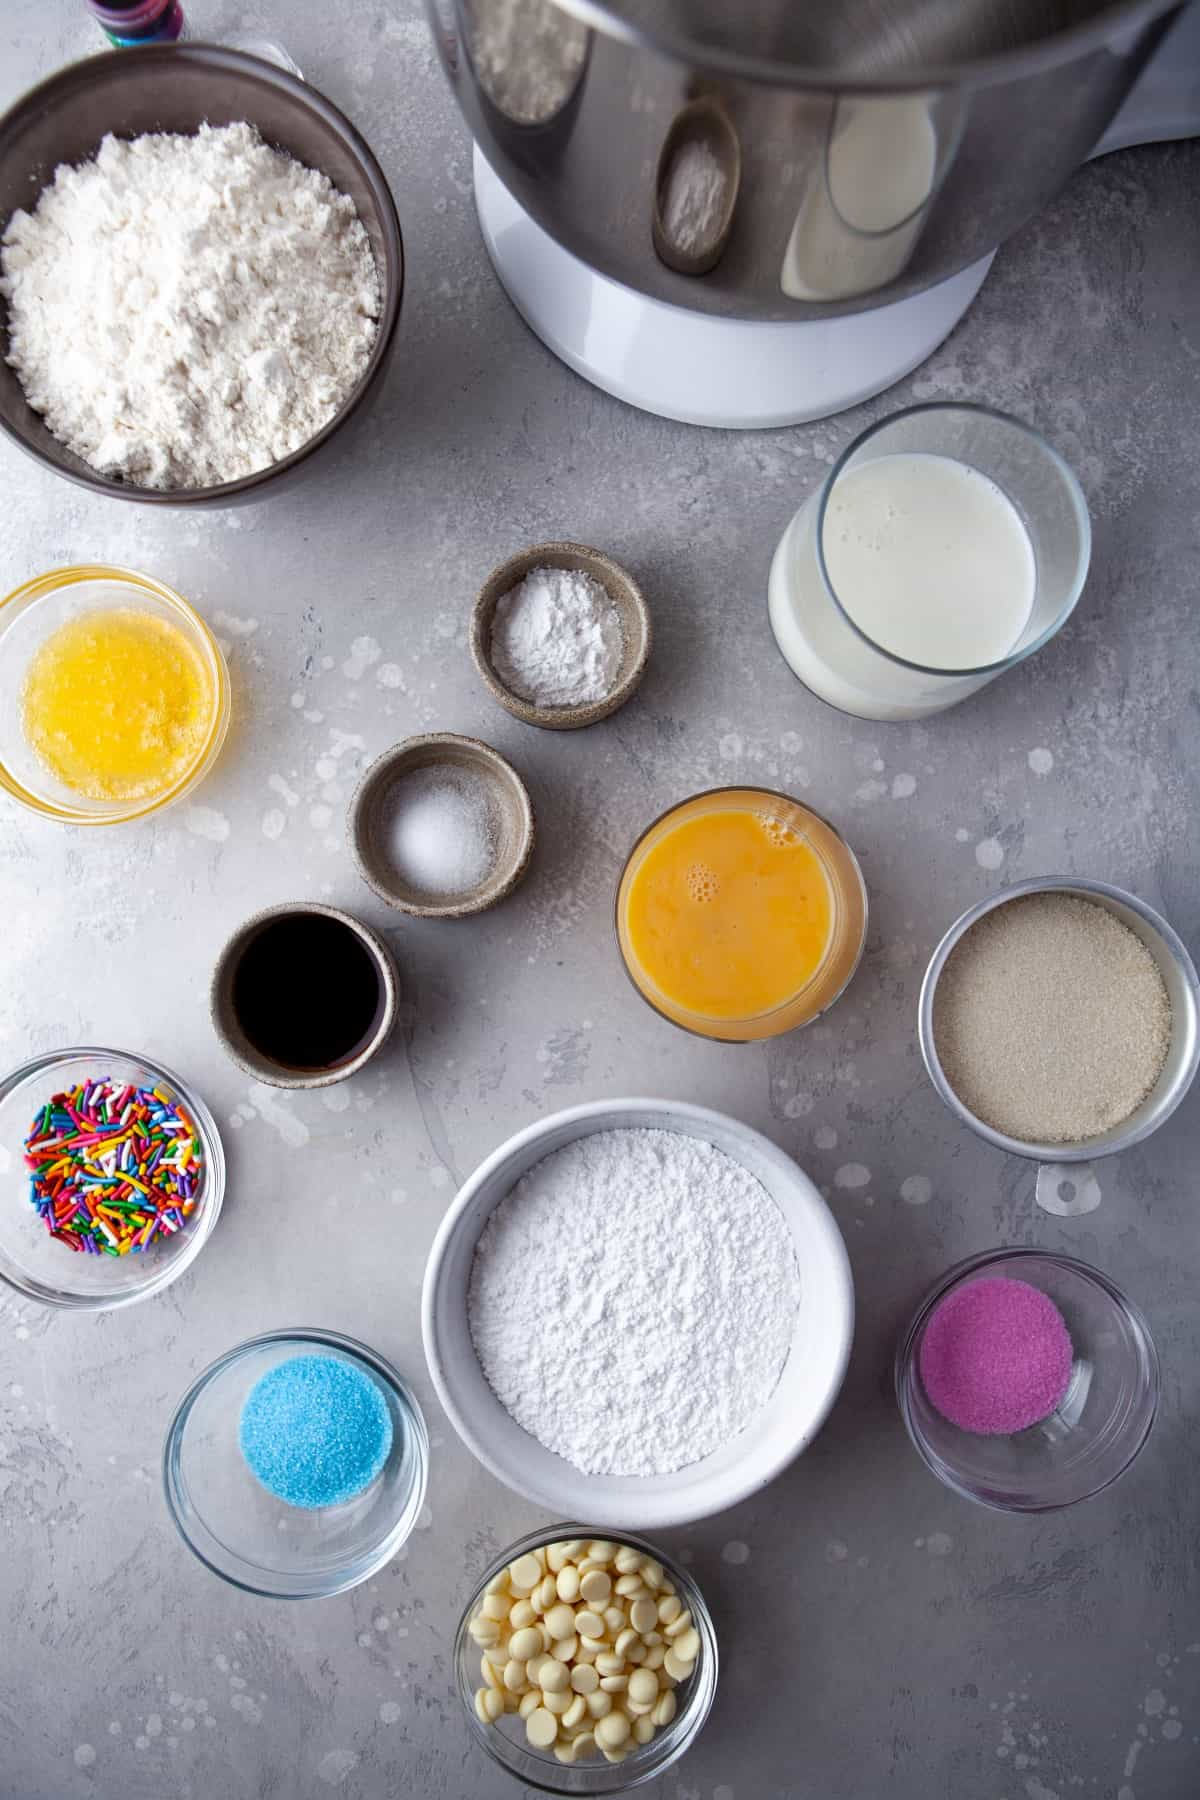 Ingredients for Vanilla Baked Buttermilk Donuts.